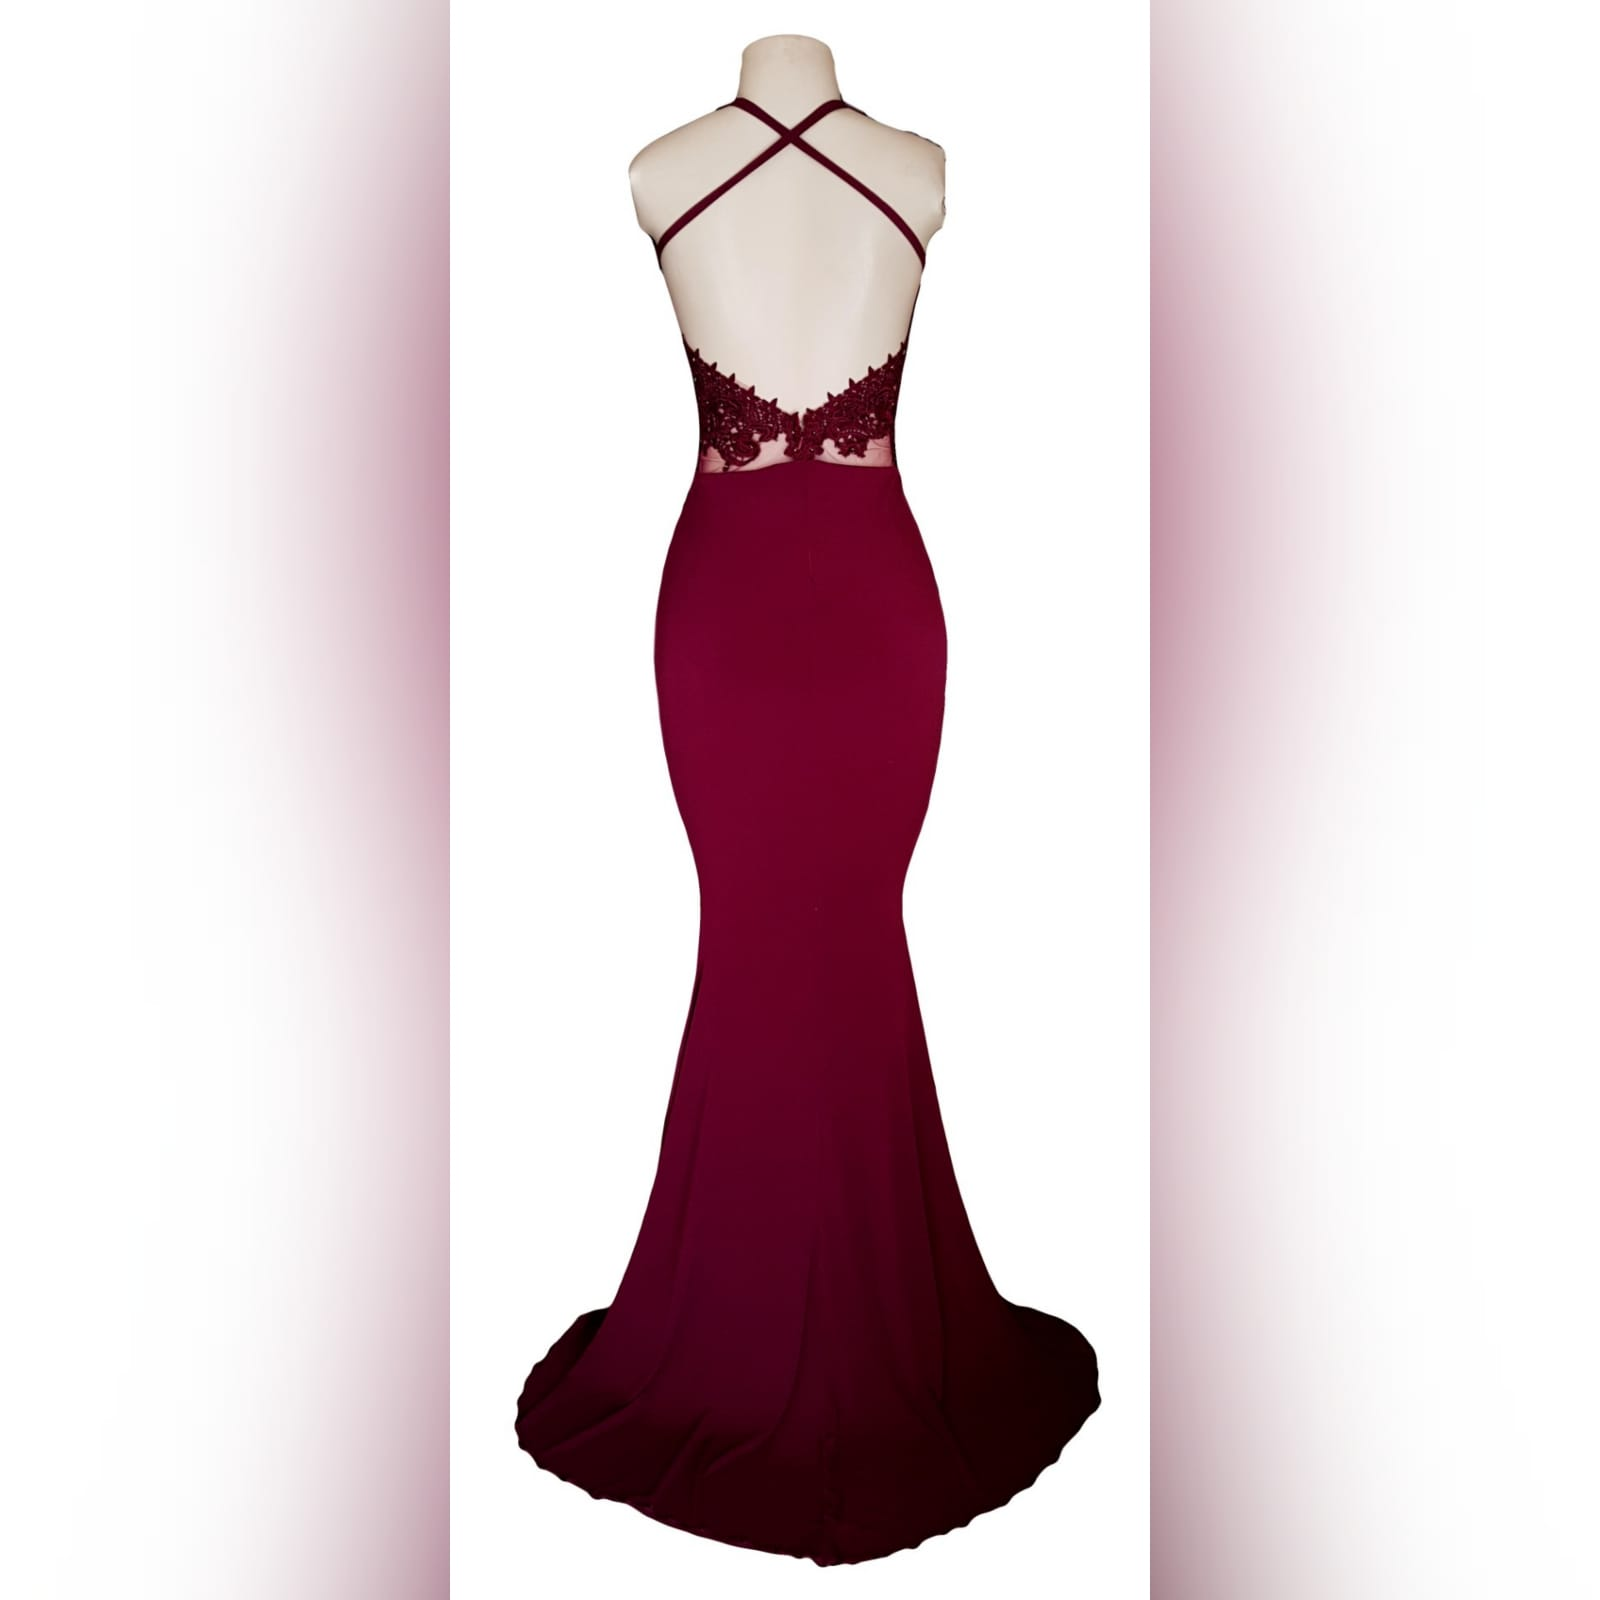 Burgundy illusion bodice soft mermaid prom dress 2 burgundy illusion bodice, soft mermaid prom dress. With a plunging neckline, low v open back with crossed straps detailed with gold beads.